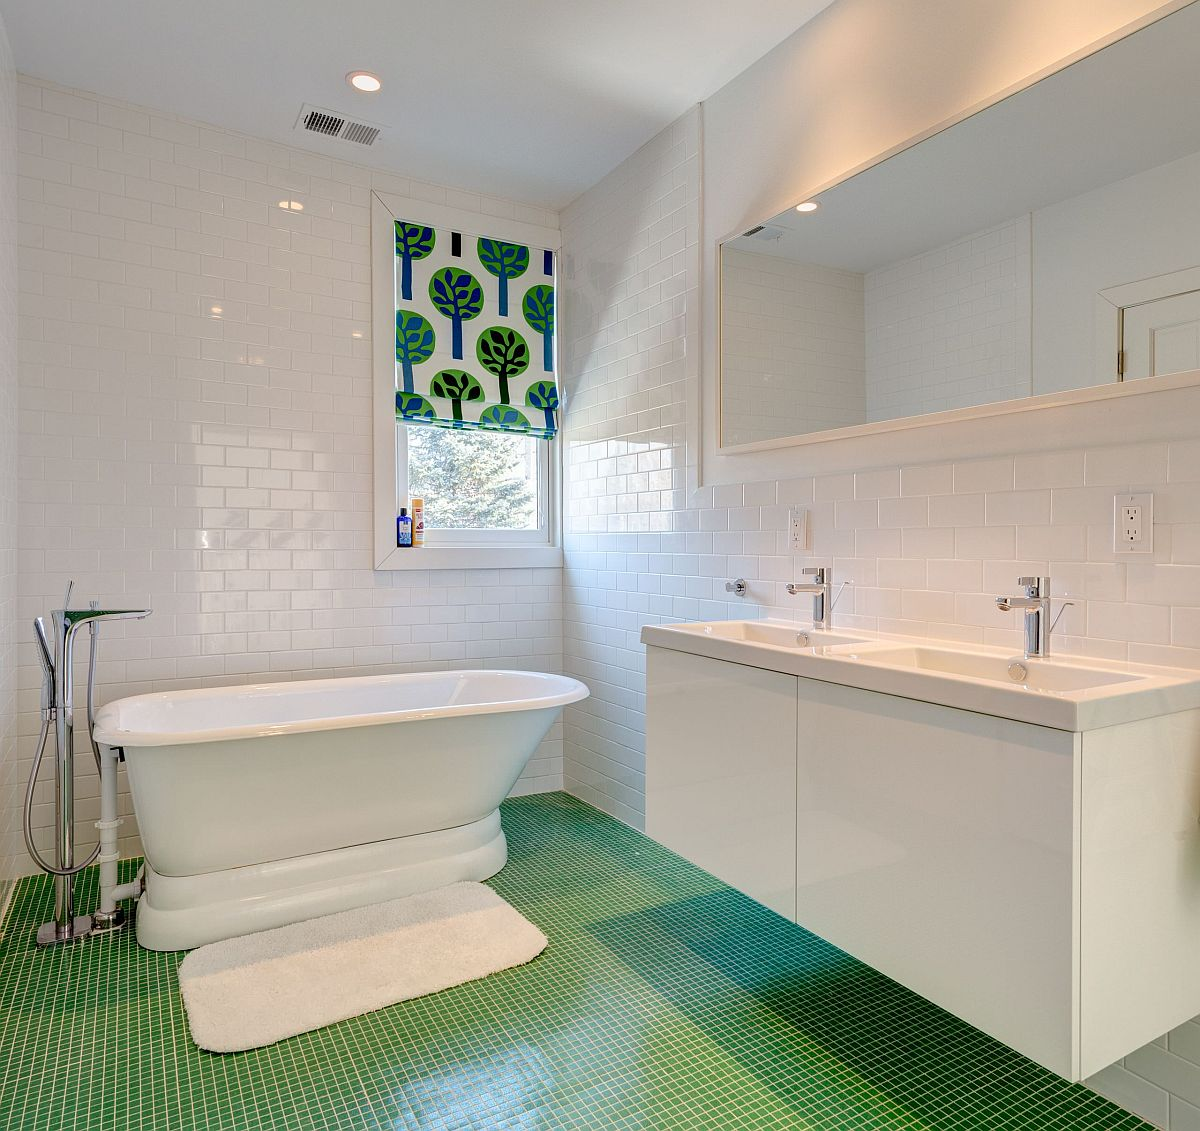 Contemporary bathroom of New York home in white with green tiled floor and accent window covering